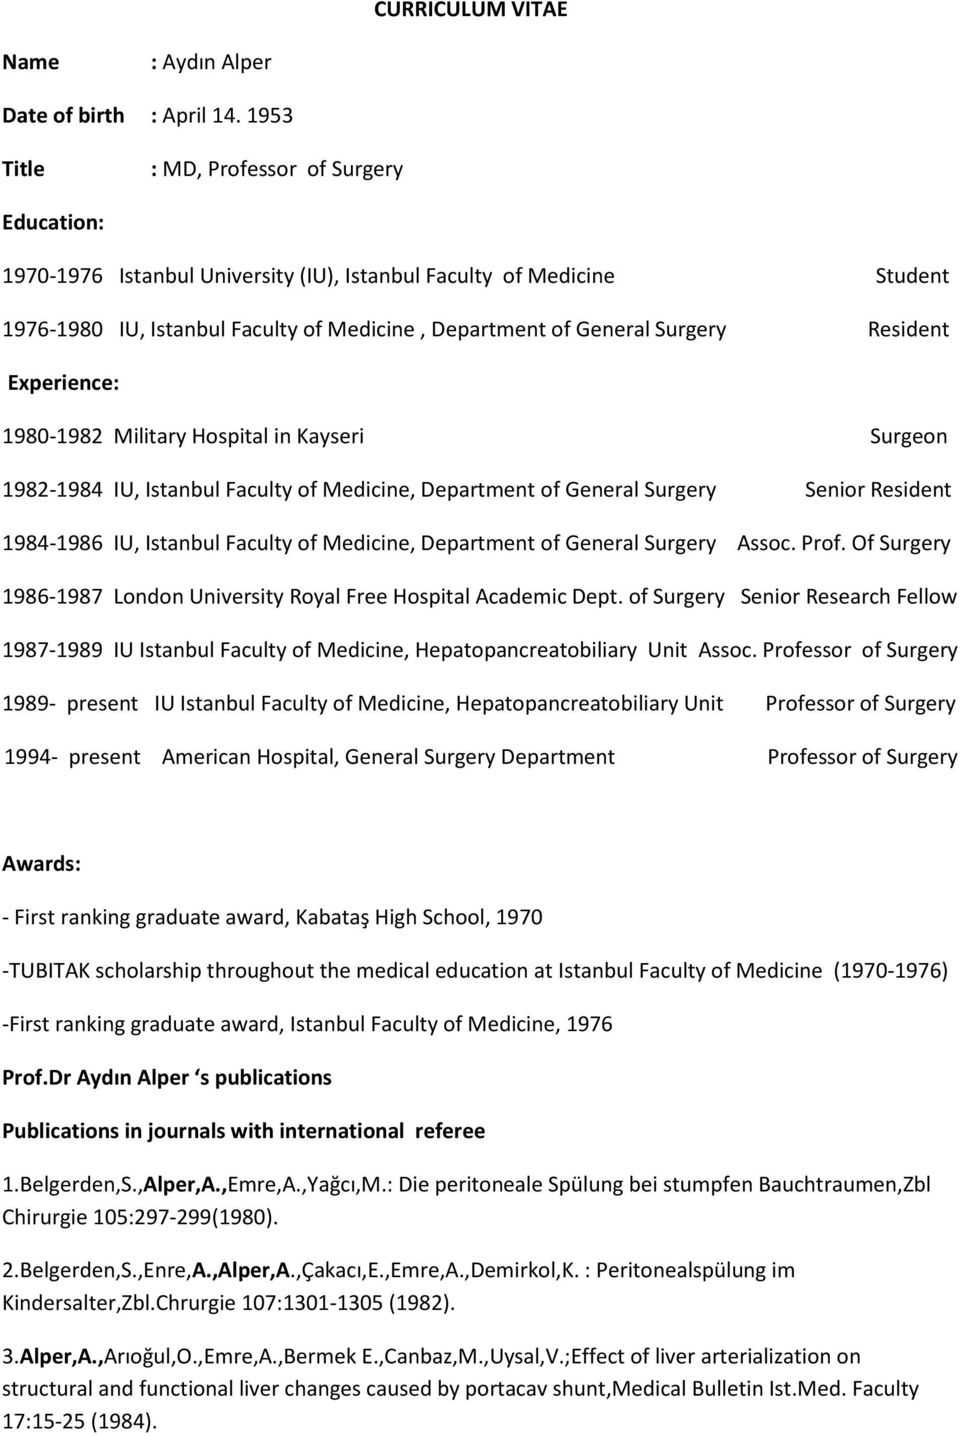 Resident Experience: 1980-1982 Military Hospital in Kayseri Surgeon 1982-1984 IU, Istanbul Faculty of Medicine, Department of General Surgery Senior Resident 1984-1986 IU, Istanbul Faculty of